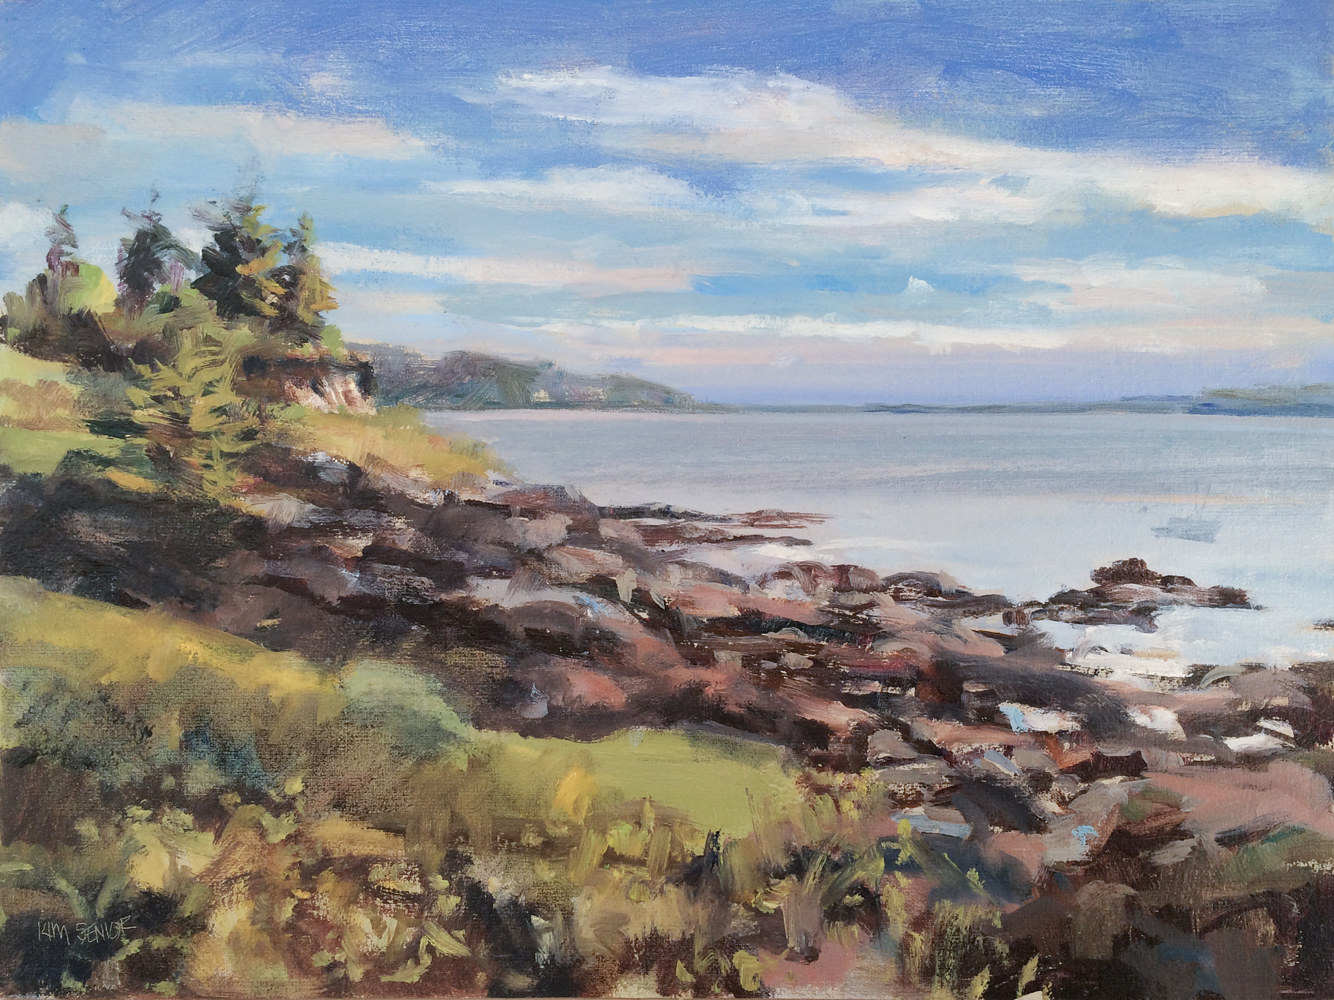 Oil painting Harrington-Cove-Morning by Kimberley Senior